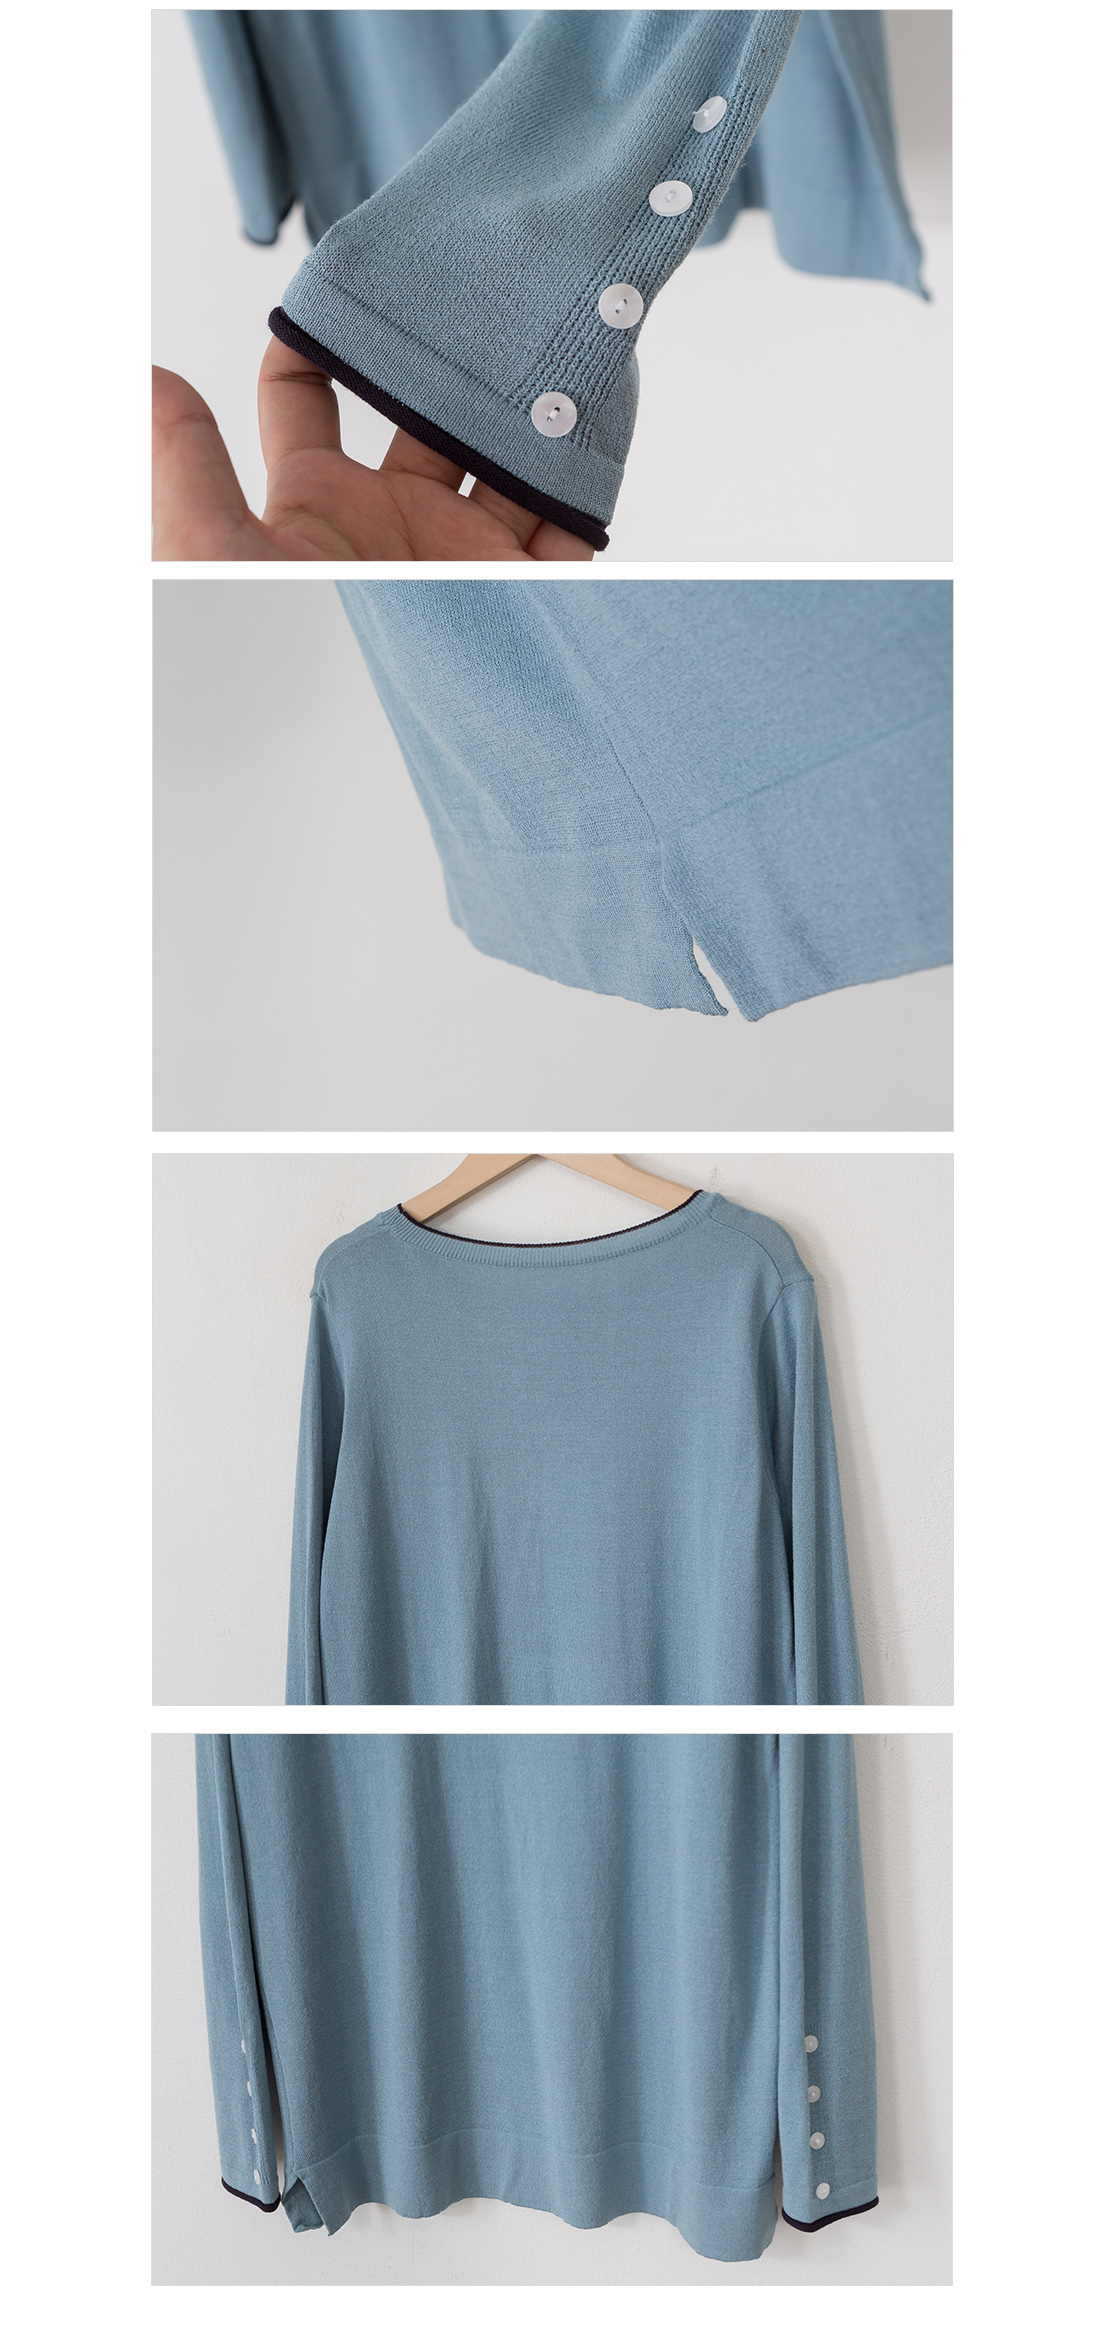 Knit T-shirt with button point line #106965